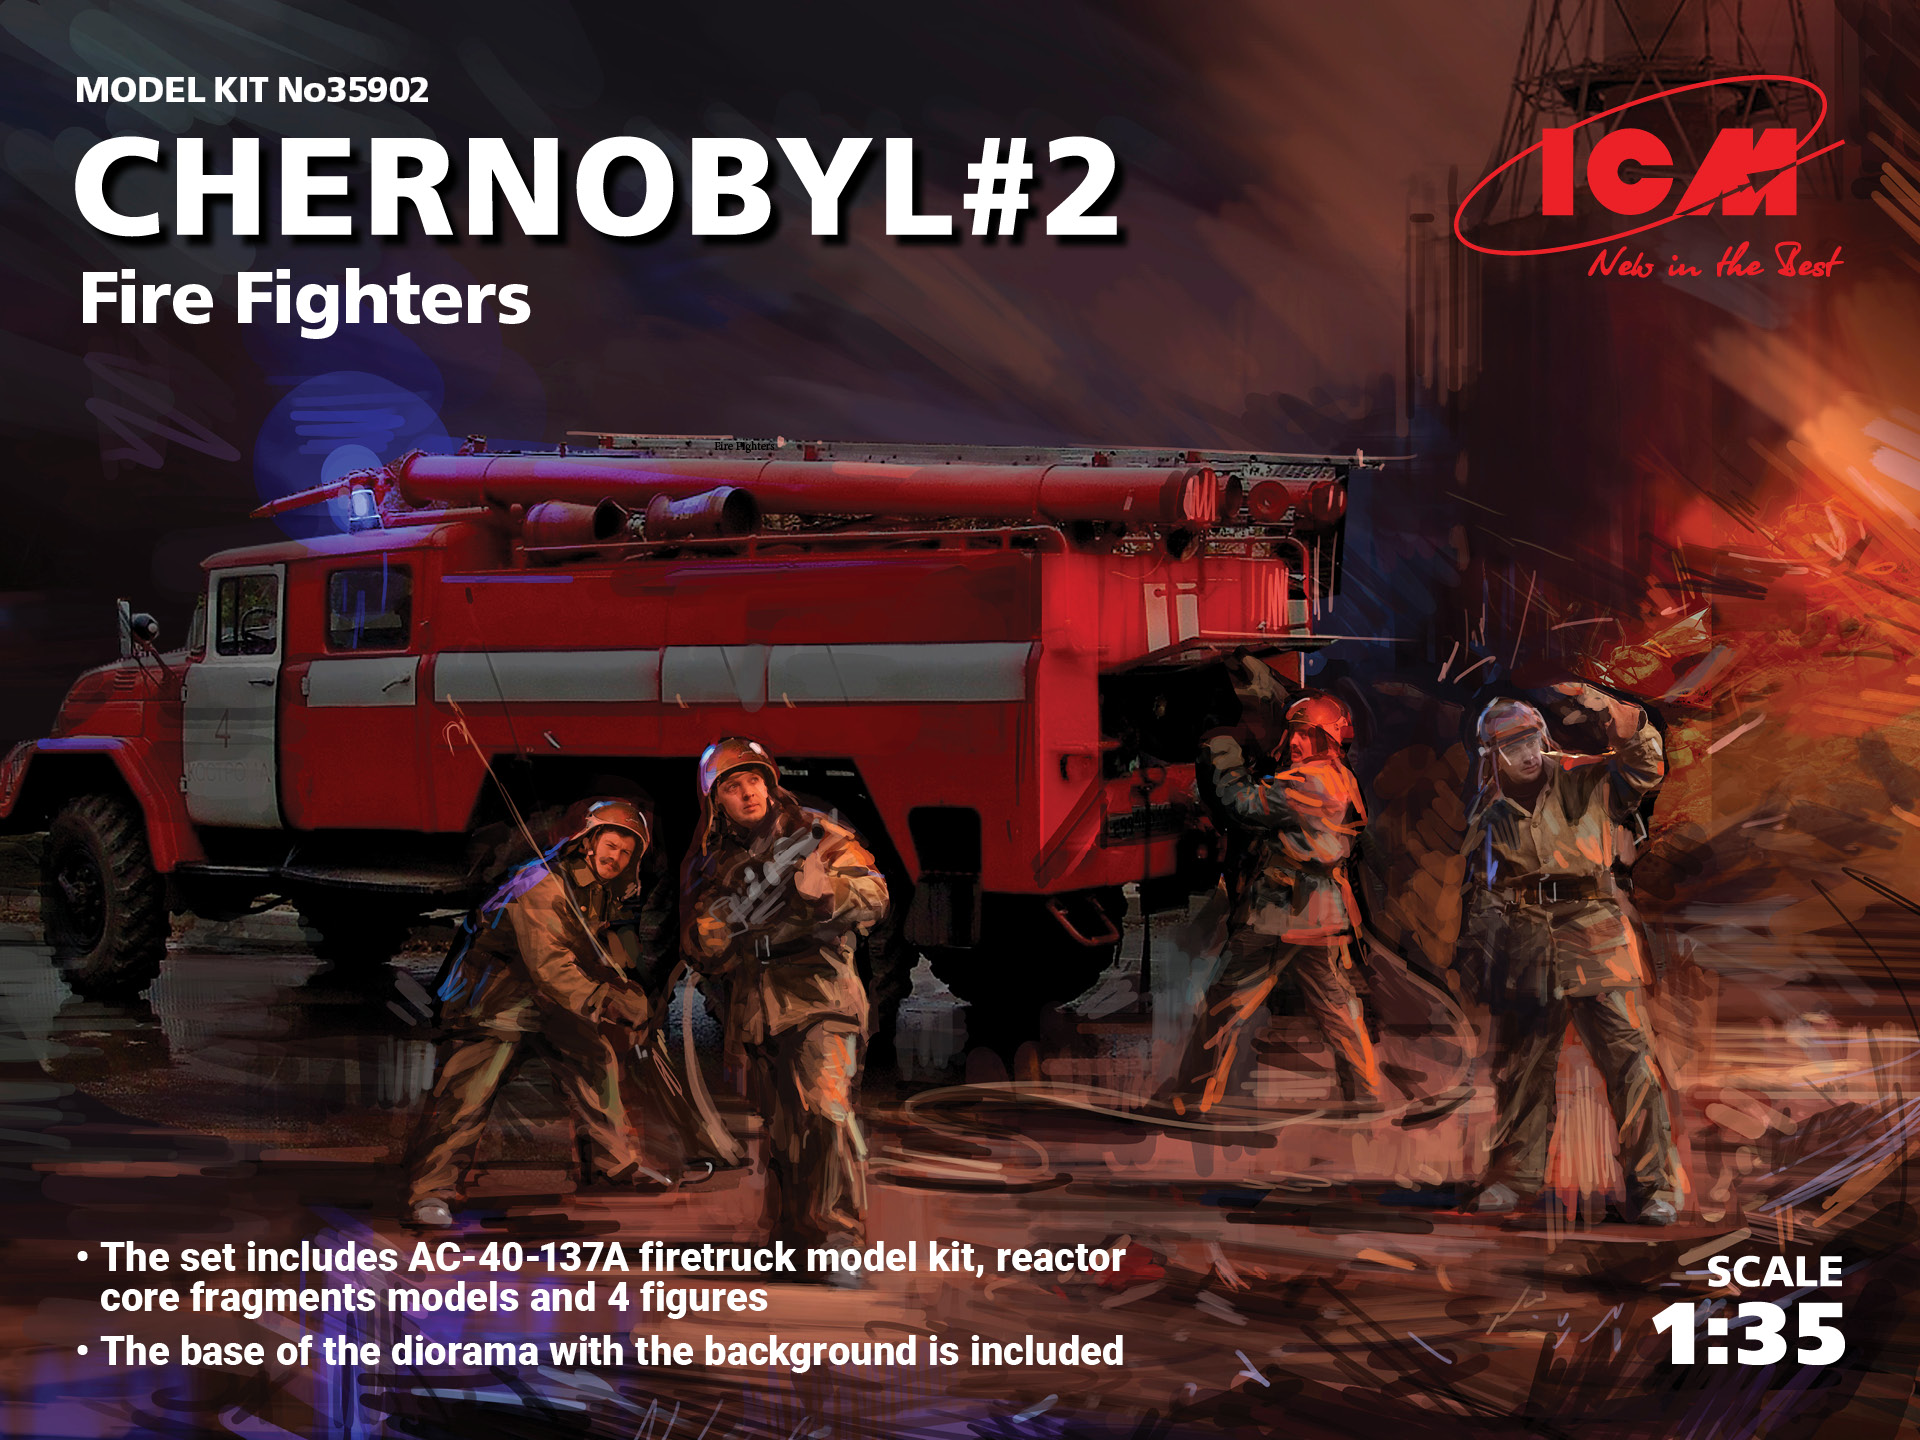 ICM Chernobyl#2. Fire Fighters (AC-40-137A firetruck & 4 figures & diorama base with background)